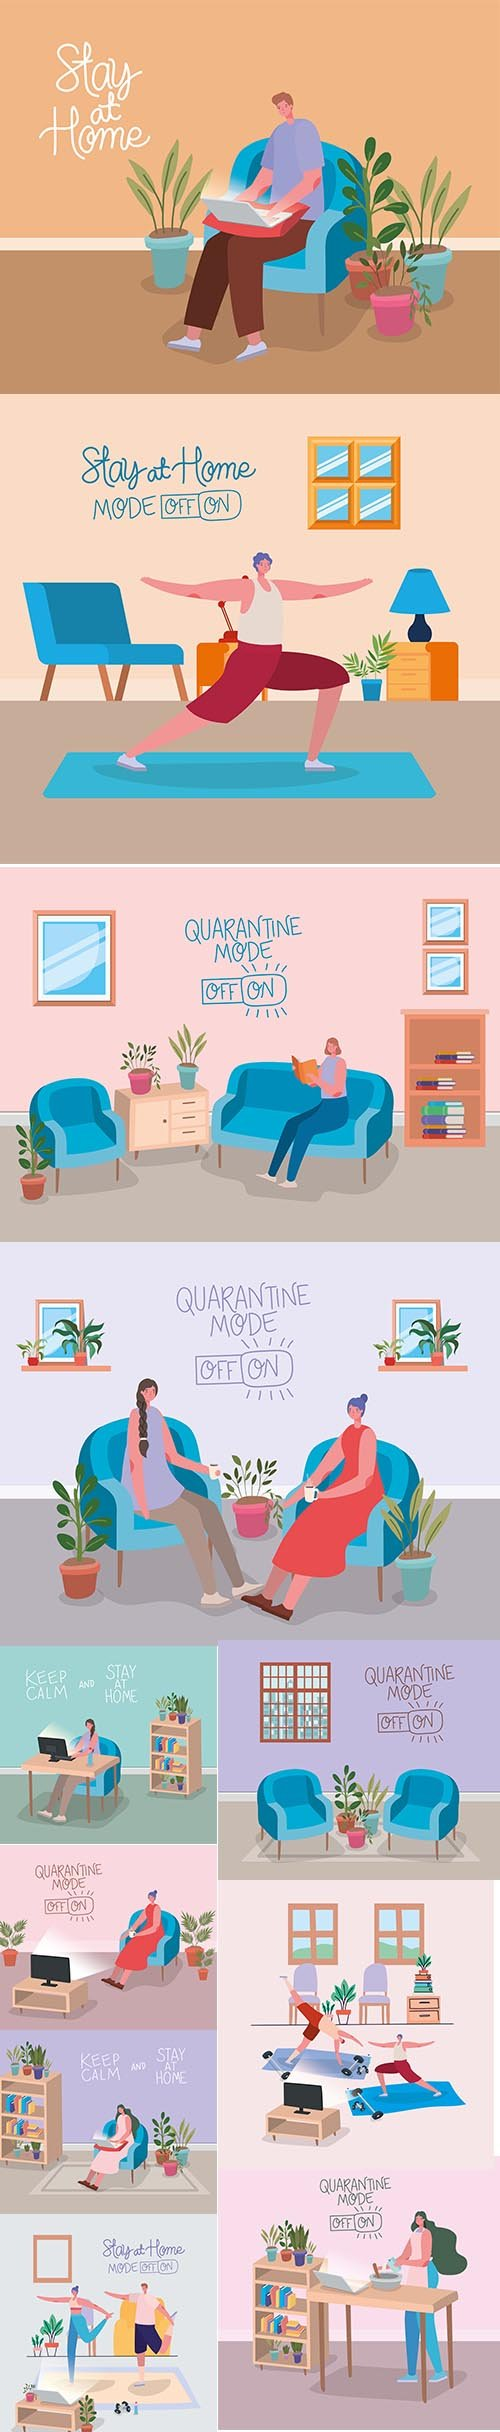 Home Activities Theme Illustration with Man a Woman